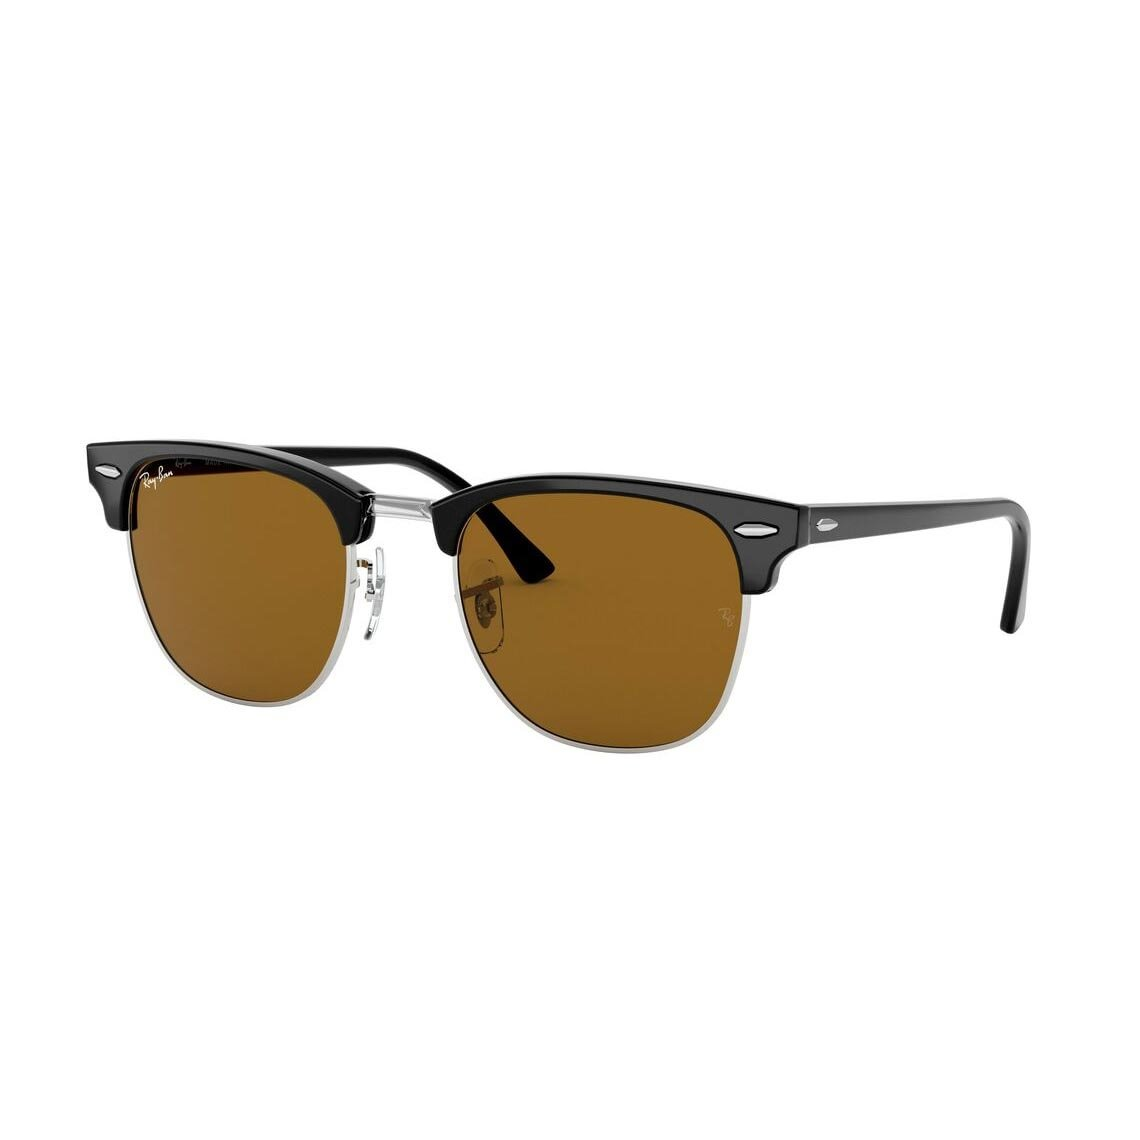 Ray-Ban Clubmaster RB3016 W3387 4921